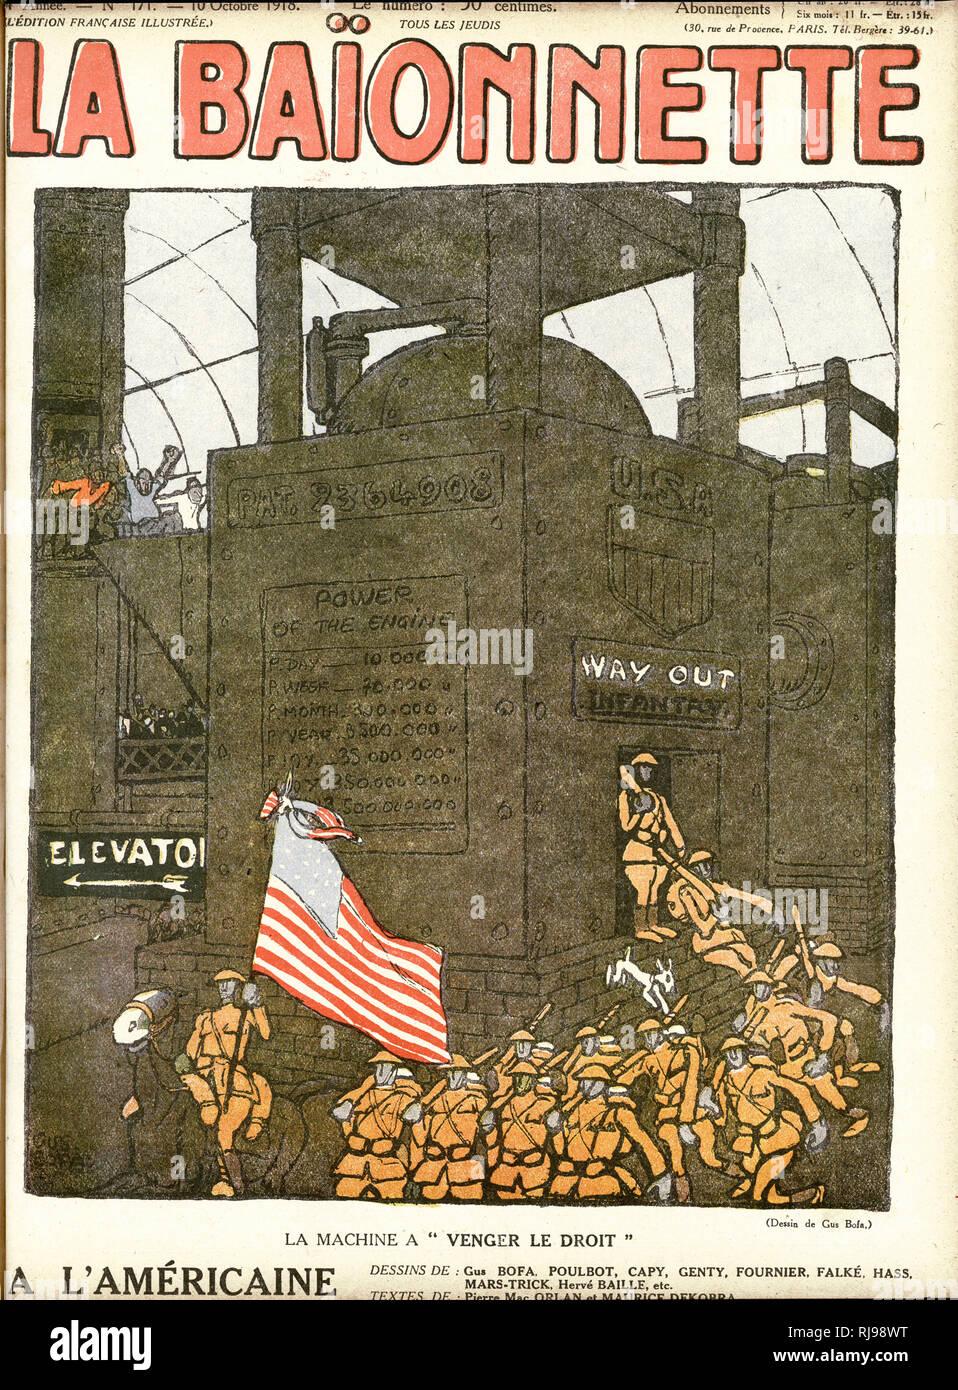 Front cover design, La Baionnette, an issue focusing on the Americans, showing a symbolic image of the American war machine, with soldiers pouring out of it to support the Allied cause. Stock Photo